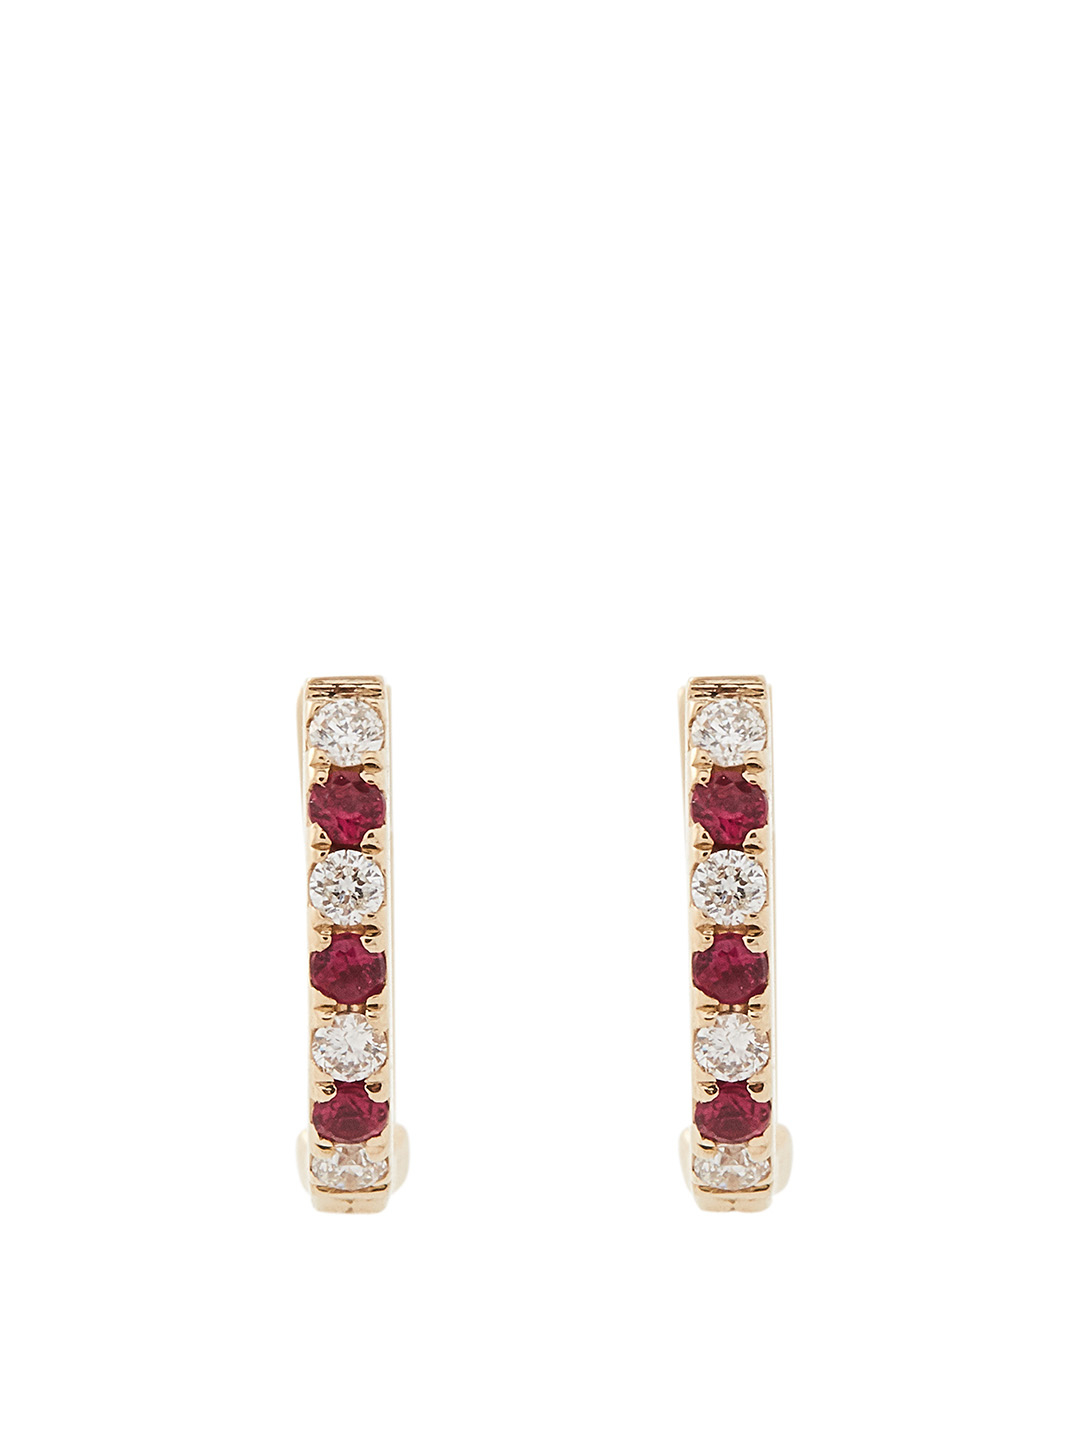 EF COLLECTION Mini 14K Gold Dot Huggie Earrings With Rubies And Diamonds Women's Metallic